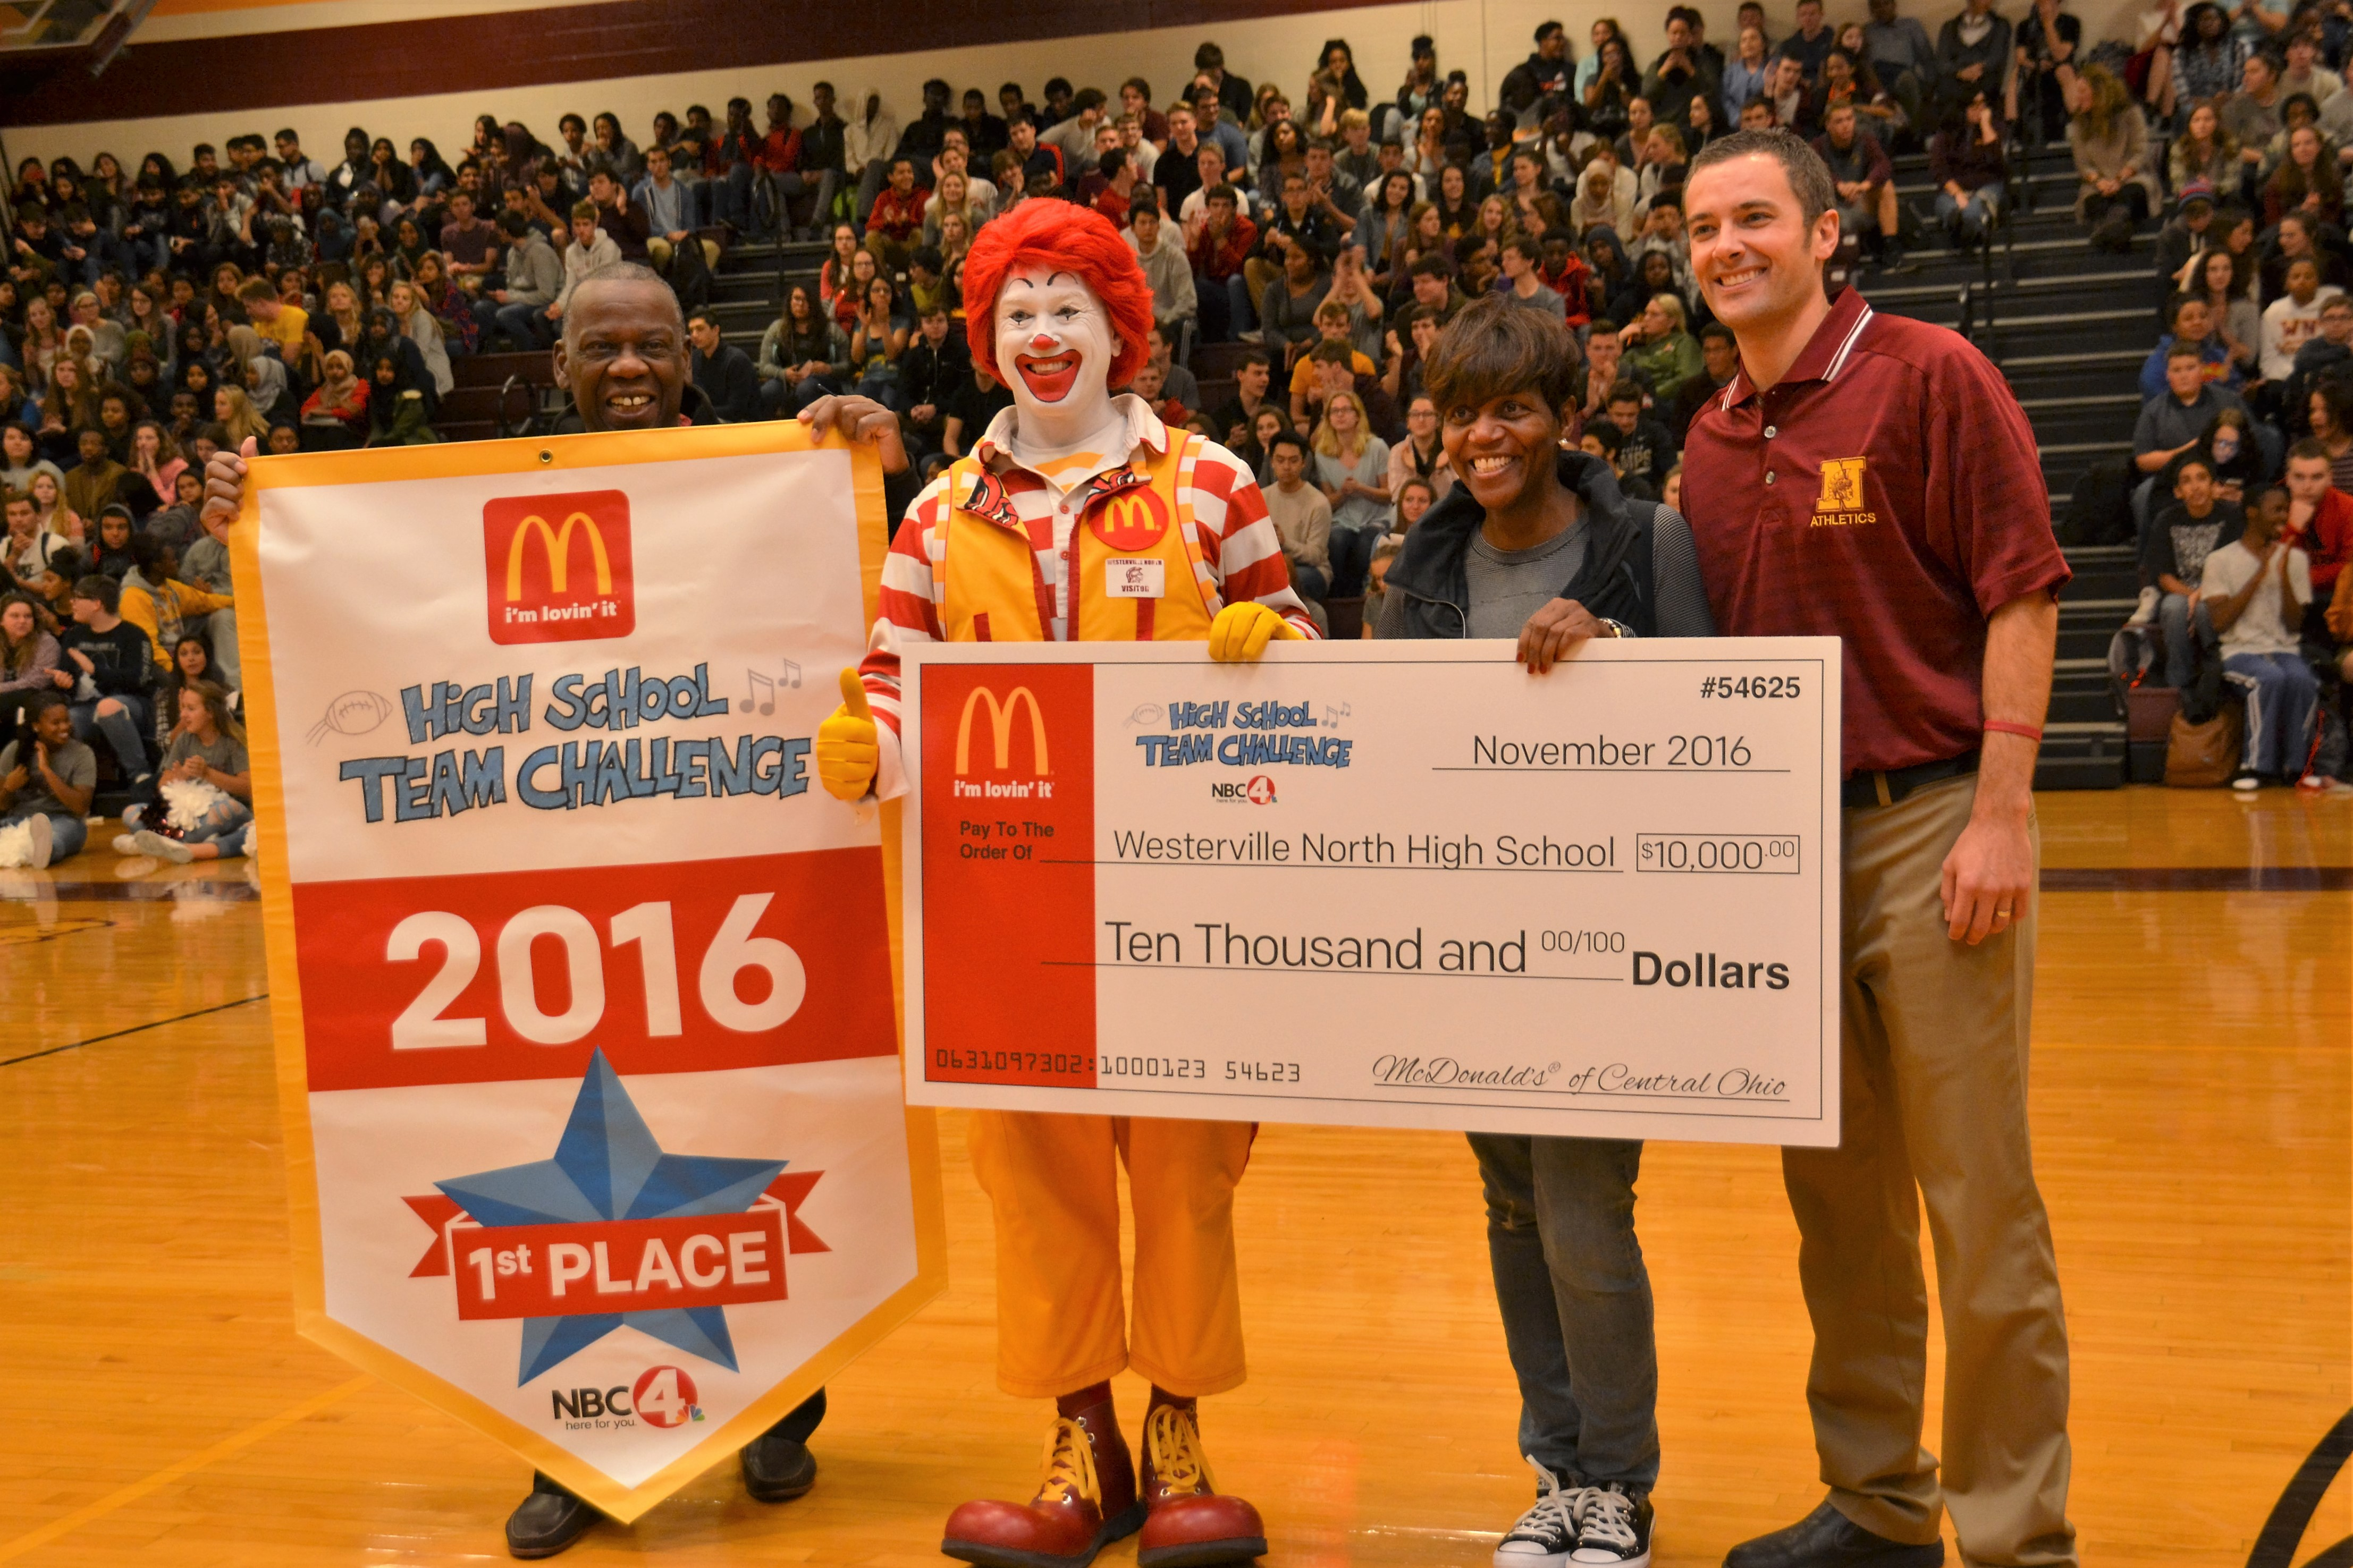 Local McDonald's owner/operators Myron and Linda Ware, along with Ronald McDonald and Westerville North Athletic Director Wes Elifritz are pictured with a $10,000 check.